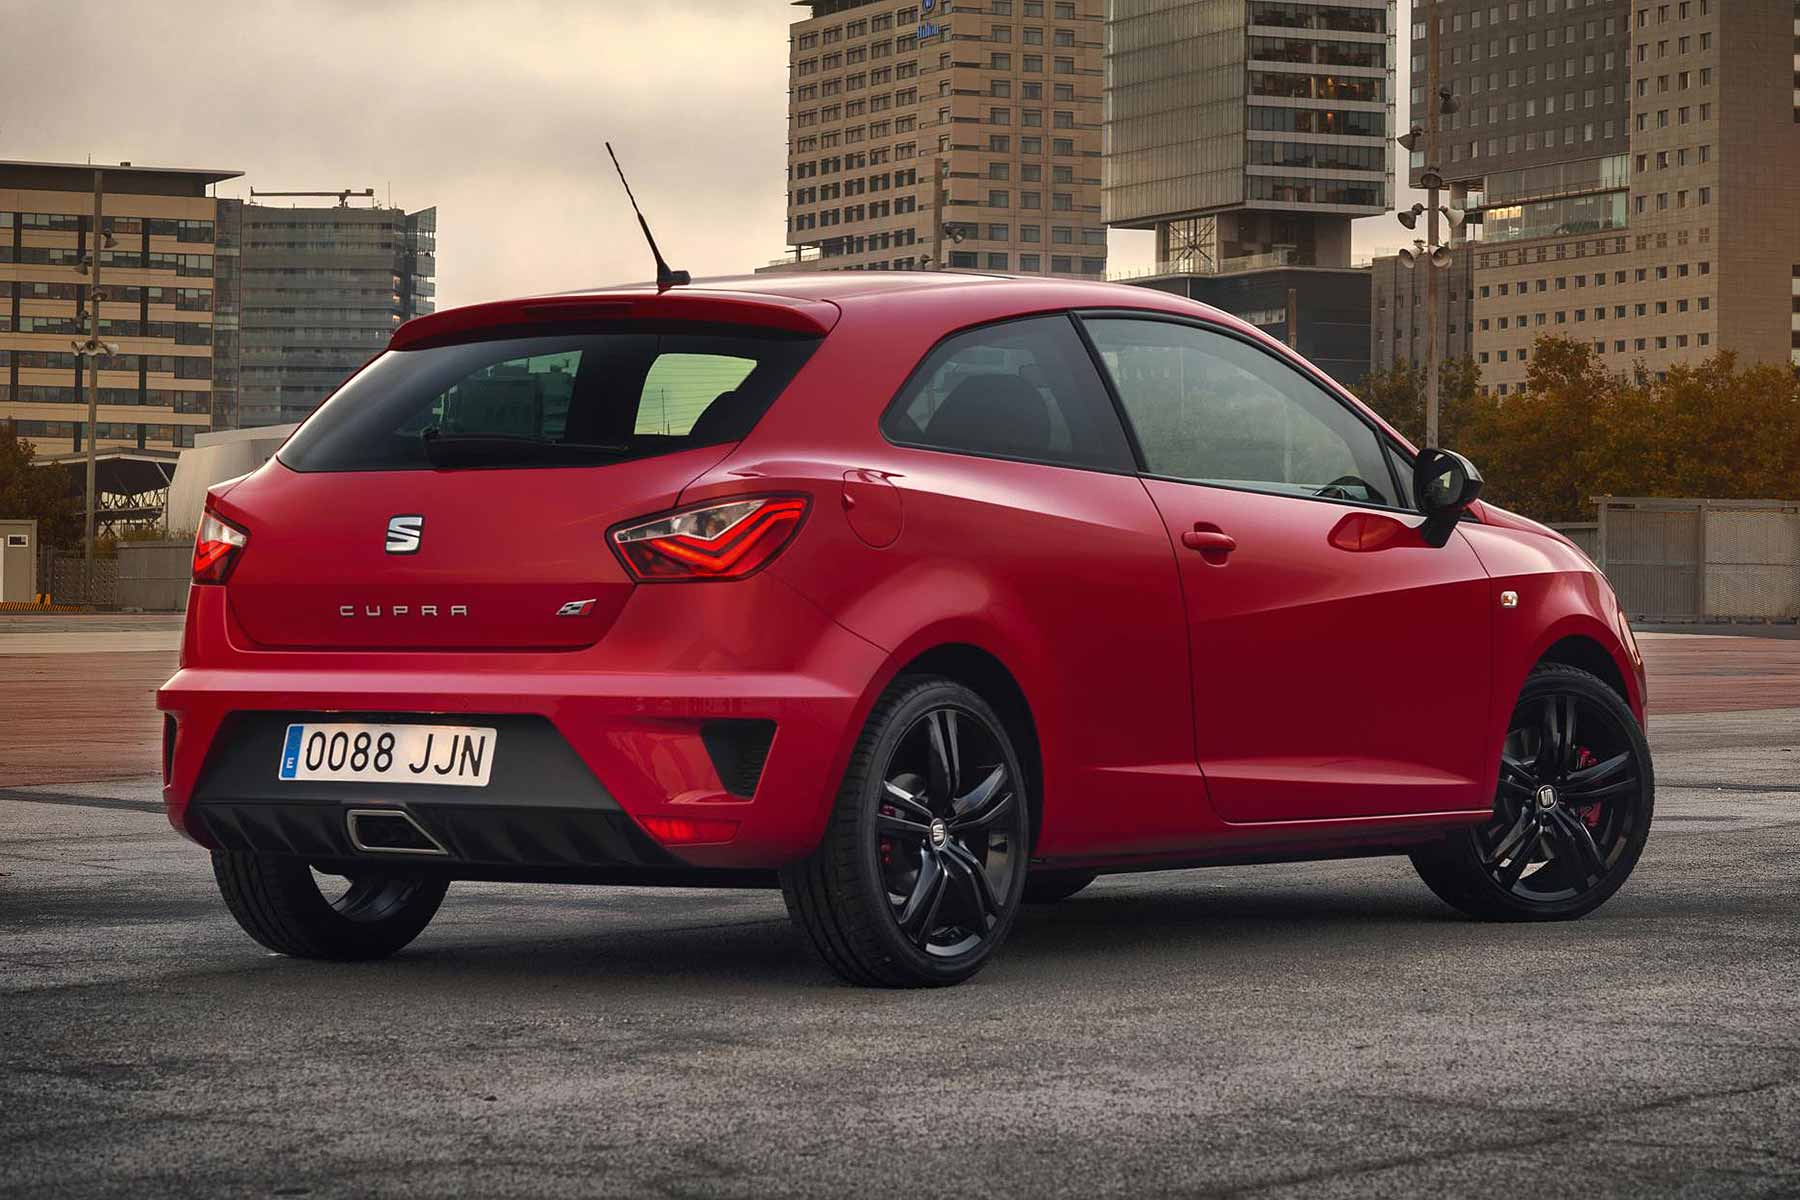 new seat ibiza cupra priced less than car it replaces motoring research. Black Bedroom Furniture Sets. Home Design Ideas